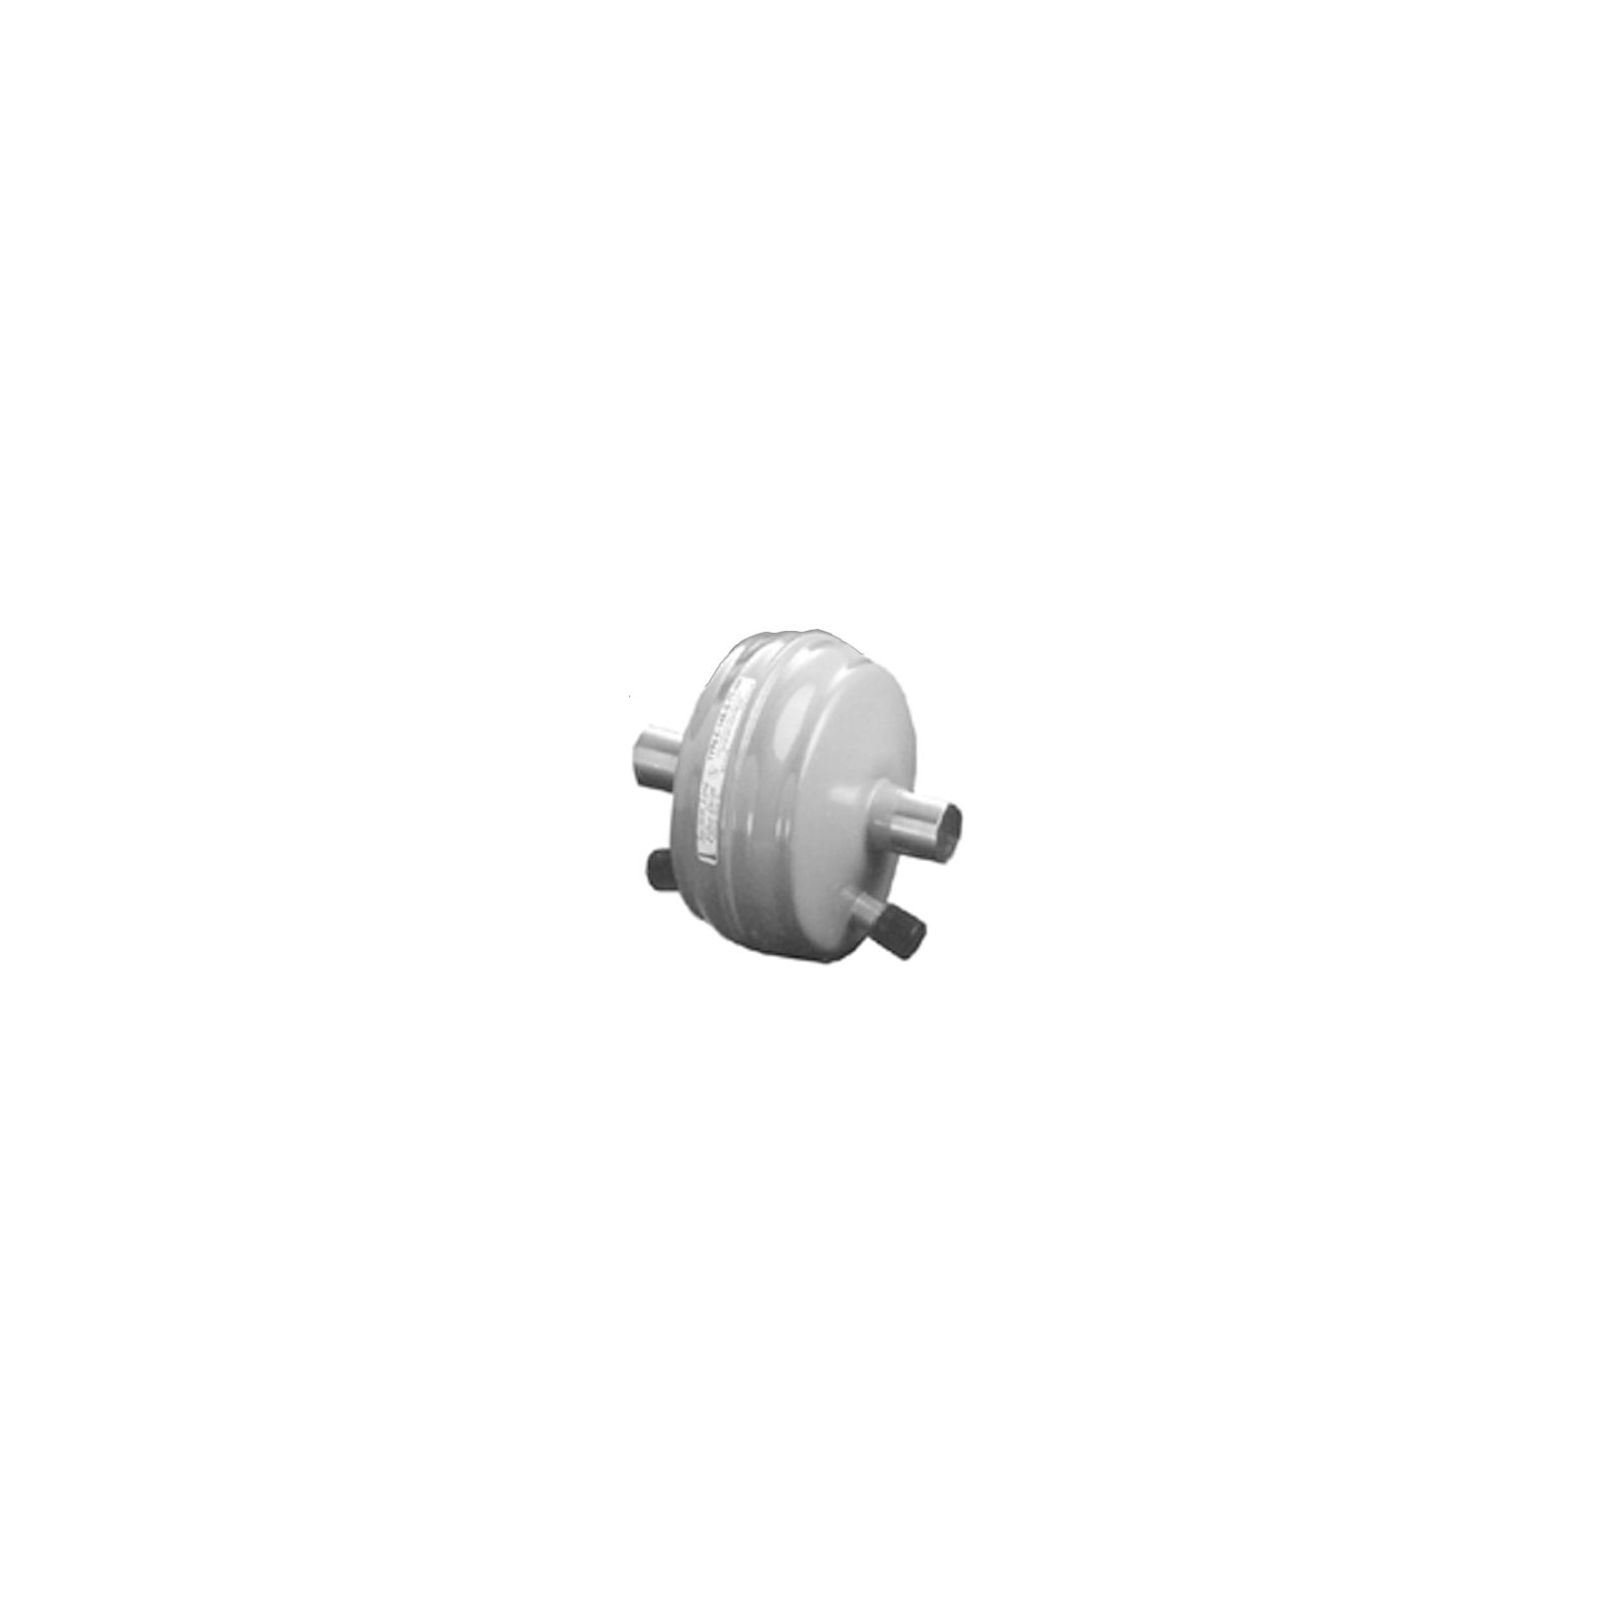 PROTECH 83-25154-02 -  Suction Line Filter Drier (Compact Shell)